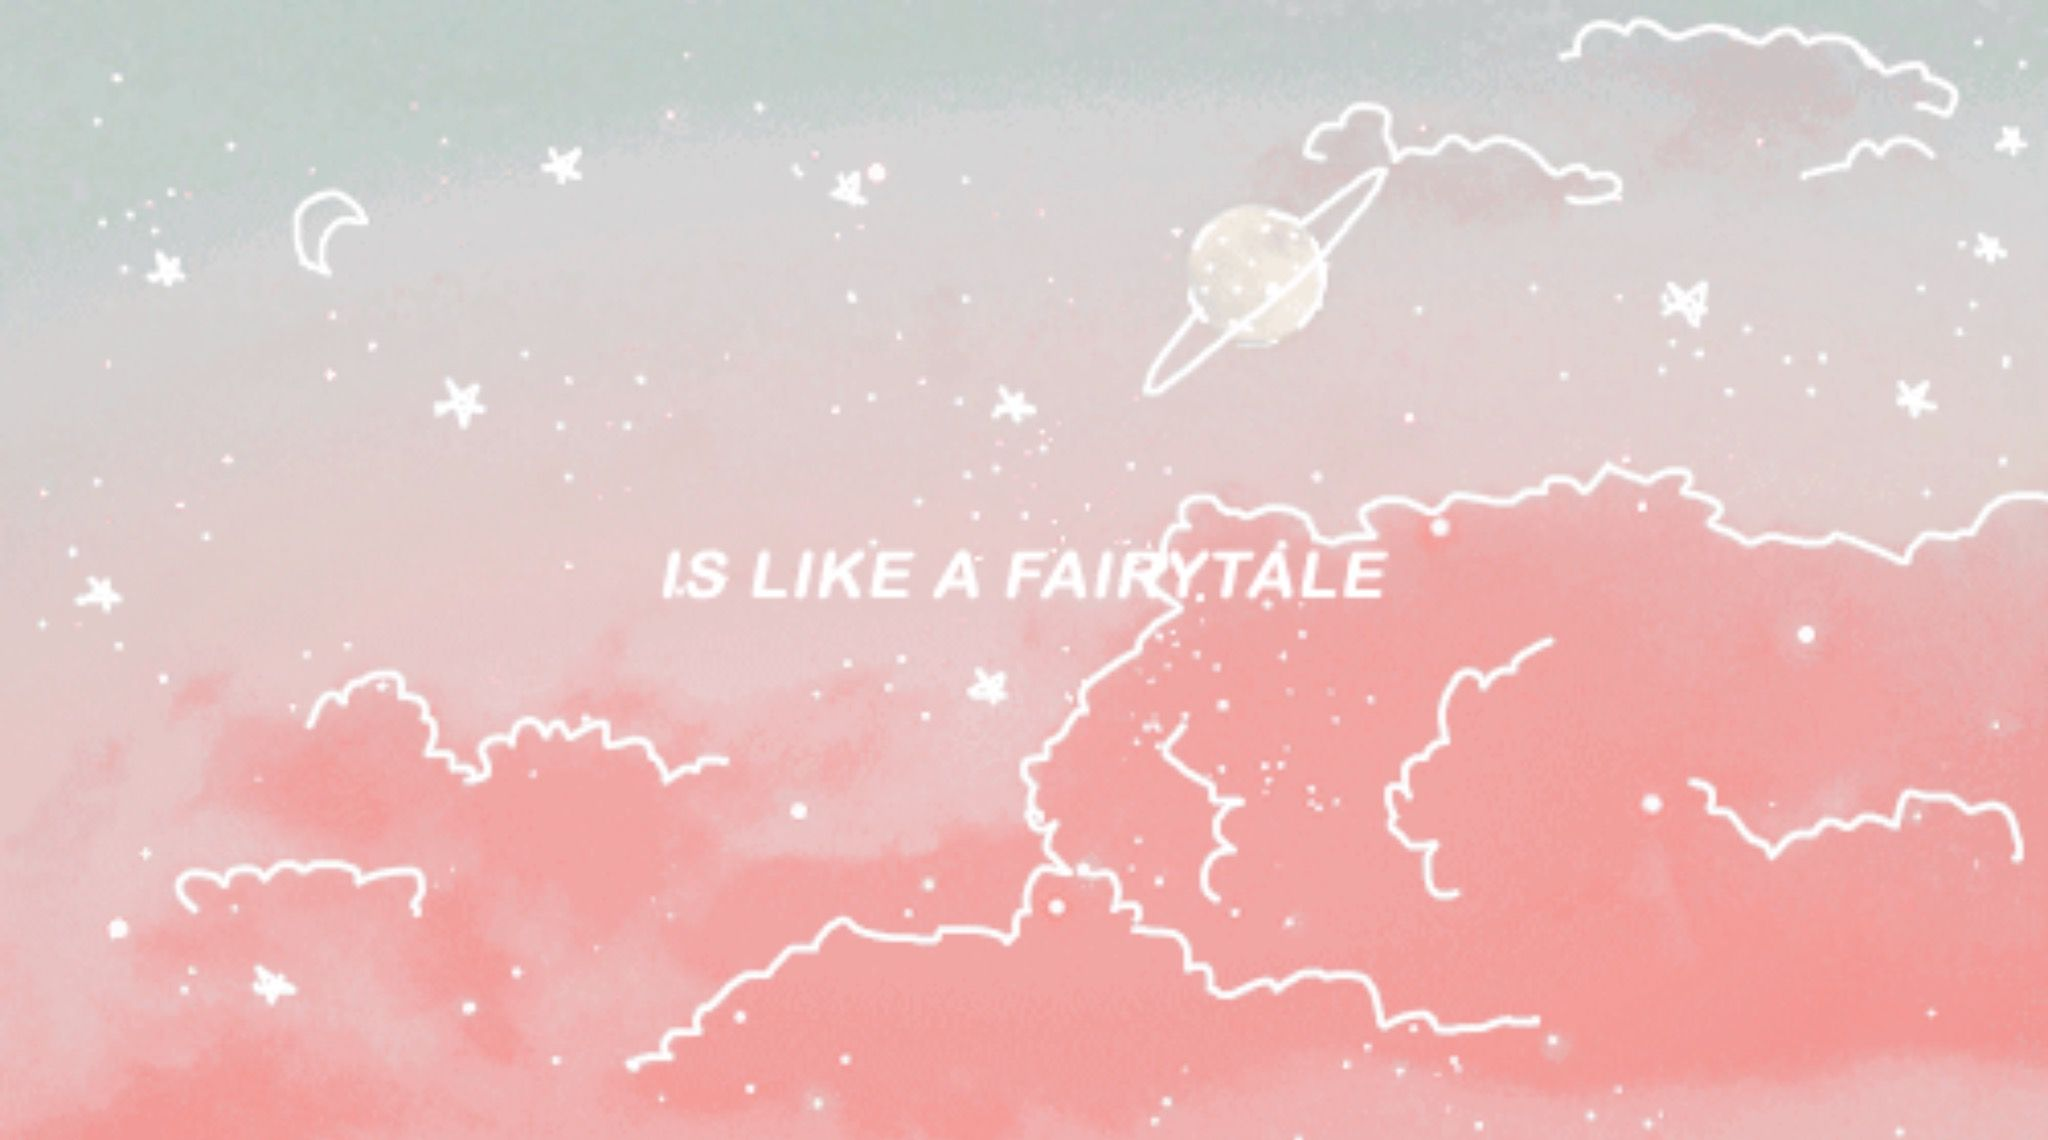 CarouselMelanie Martinez (Part 2 of 2) (With images